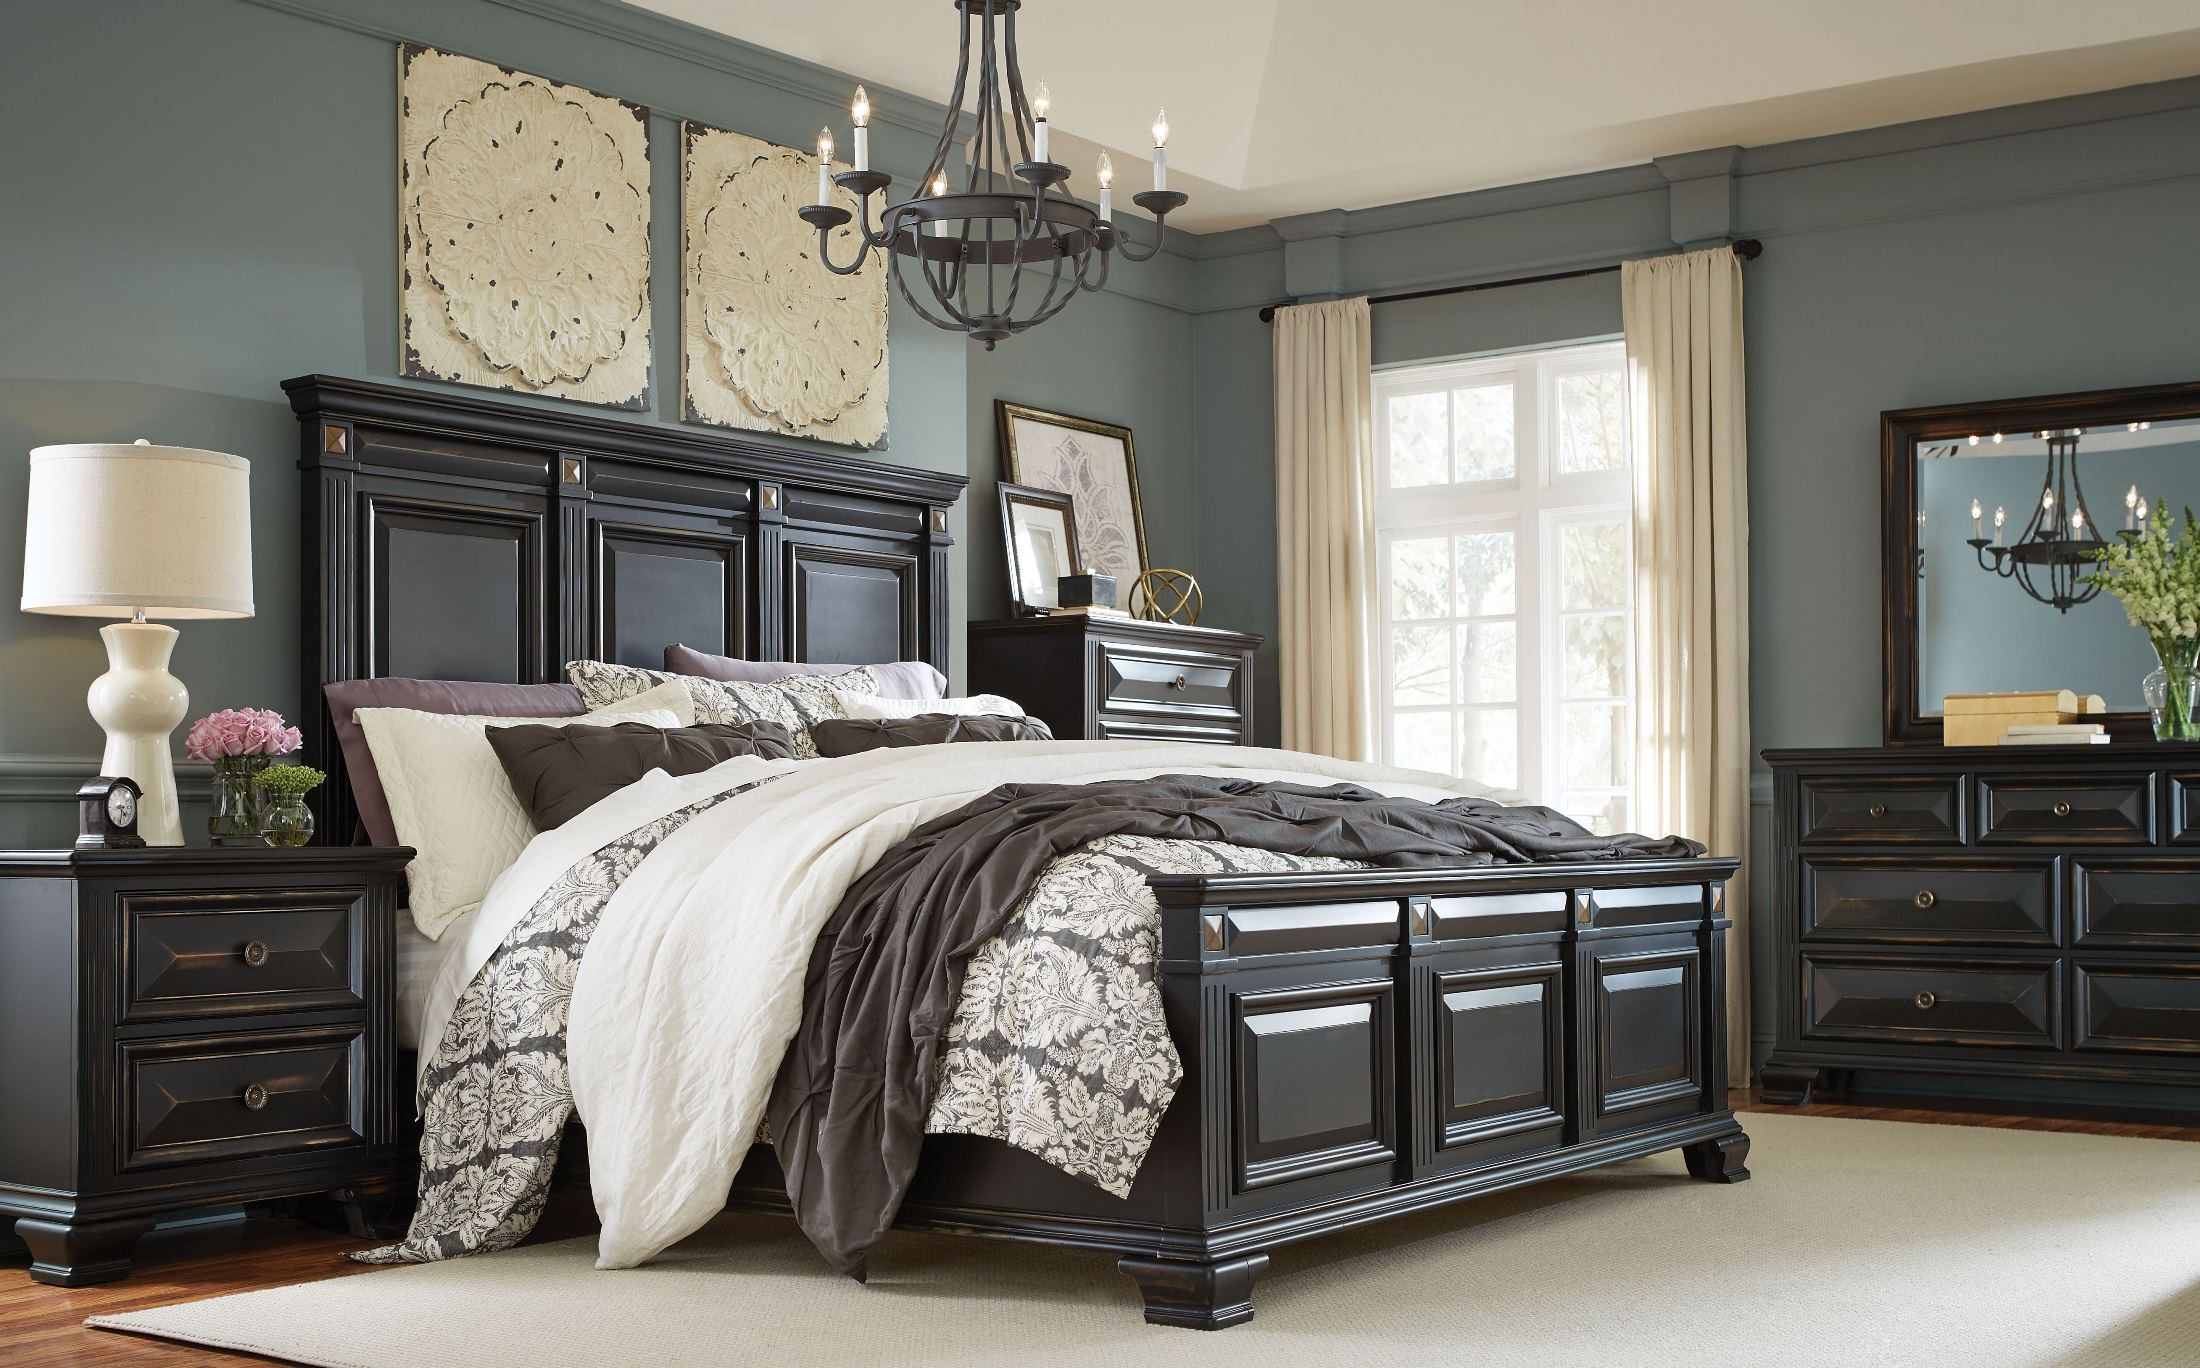 Passages Vintage Black Panel Bedroom Set From Standard